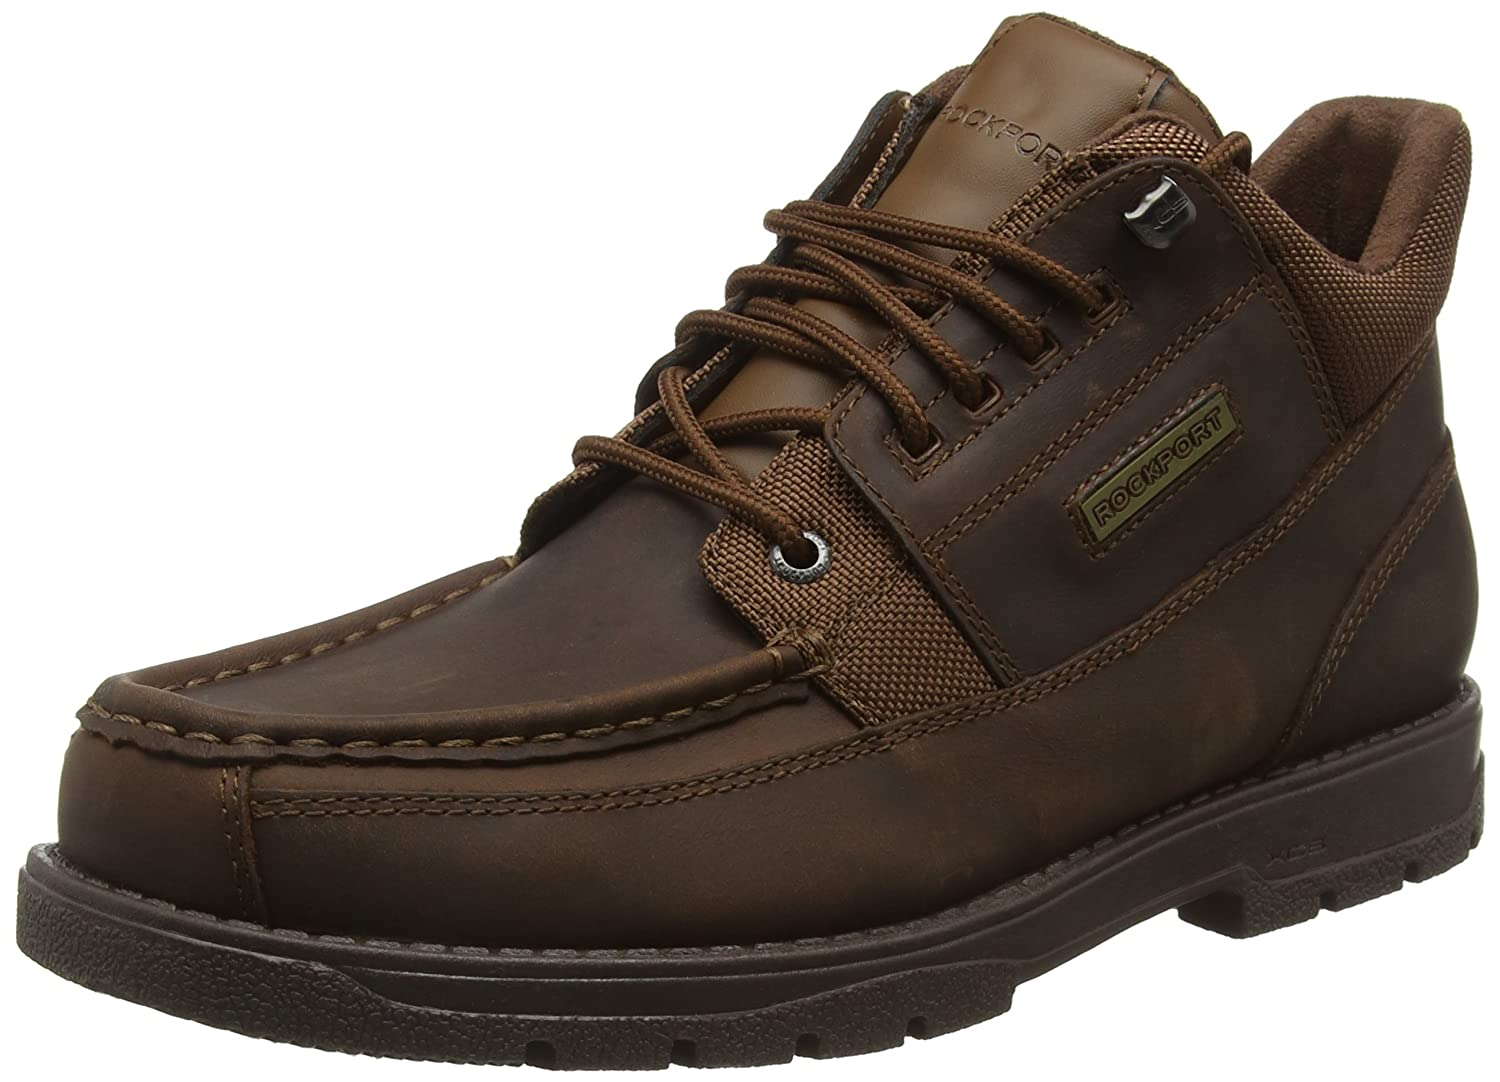 Rockport Men's Tree Line Hike Marangue Ankle Boots